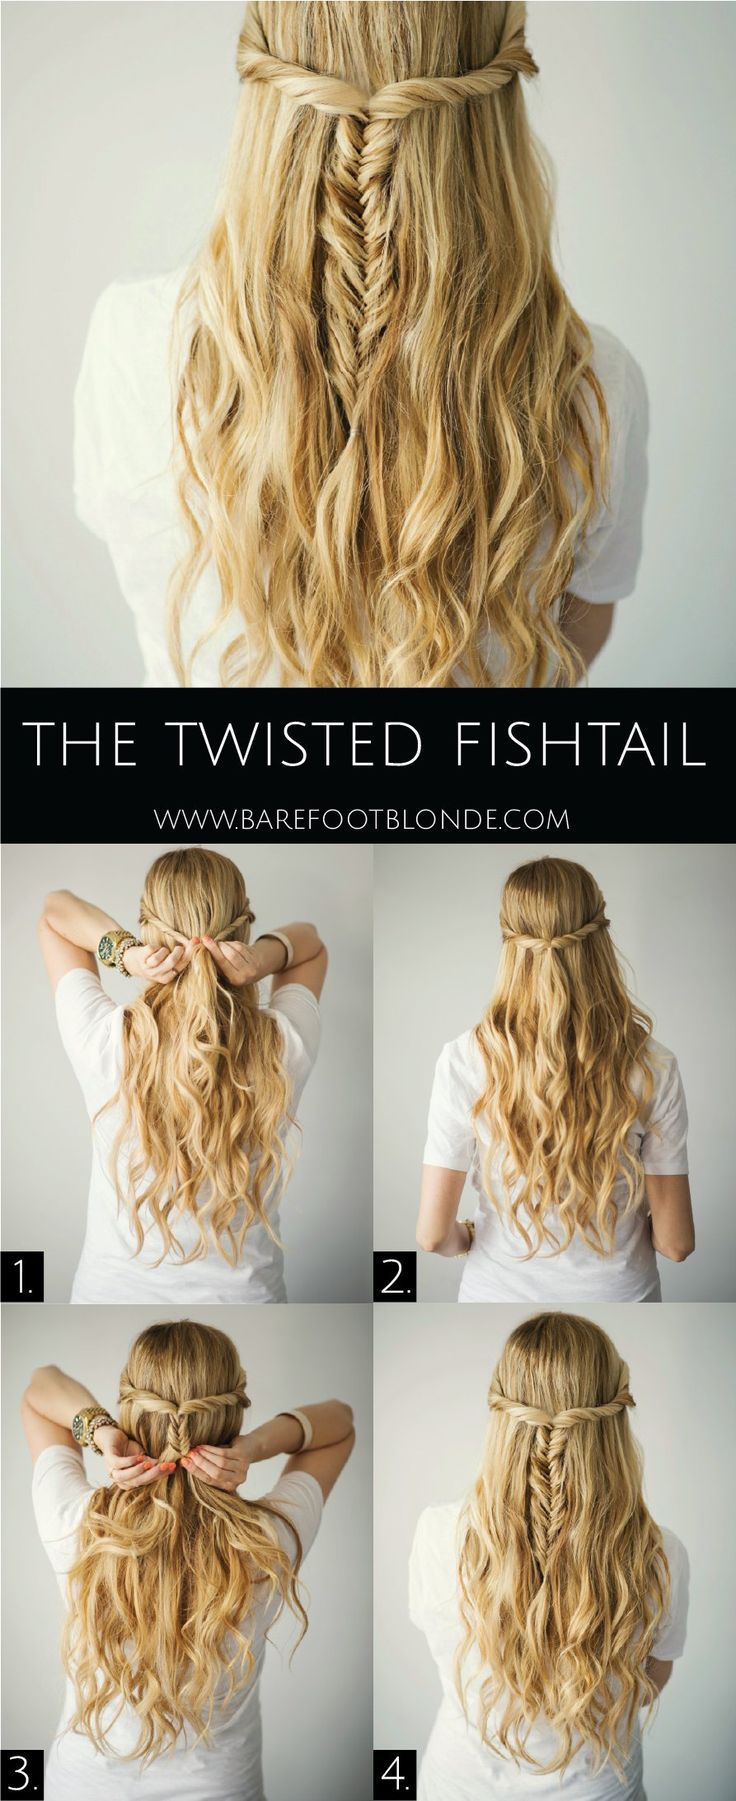 Pin by mgorisen on frisuren pinterest hair style prom hair and